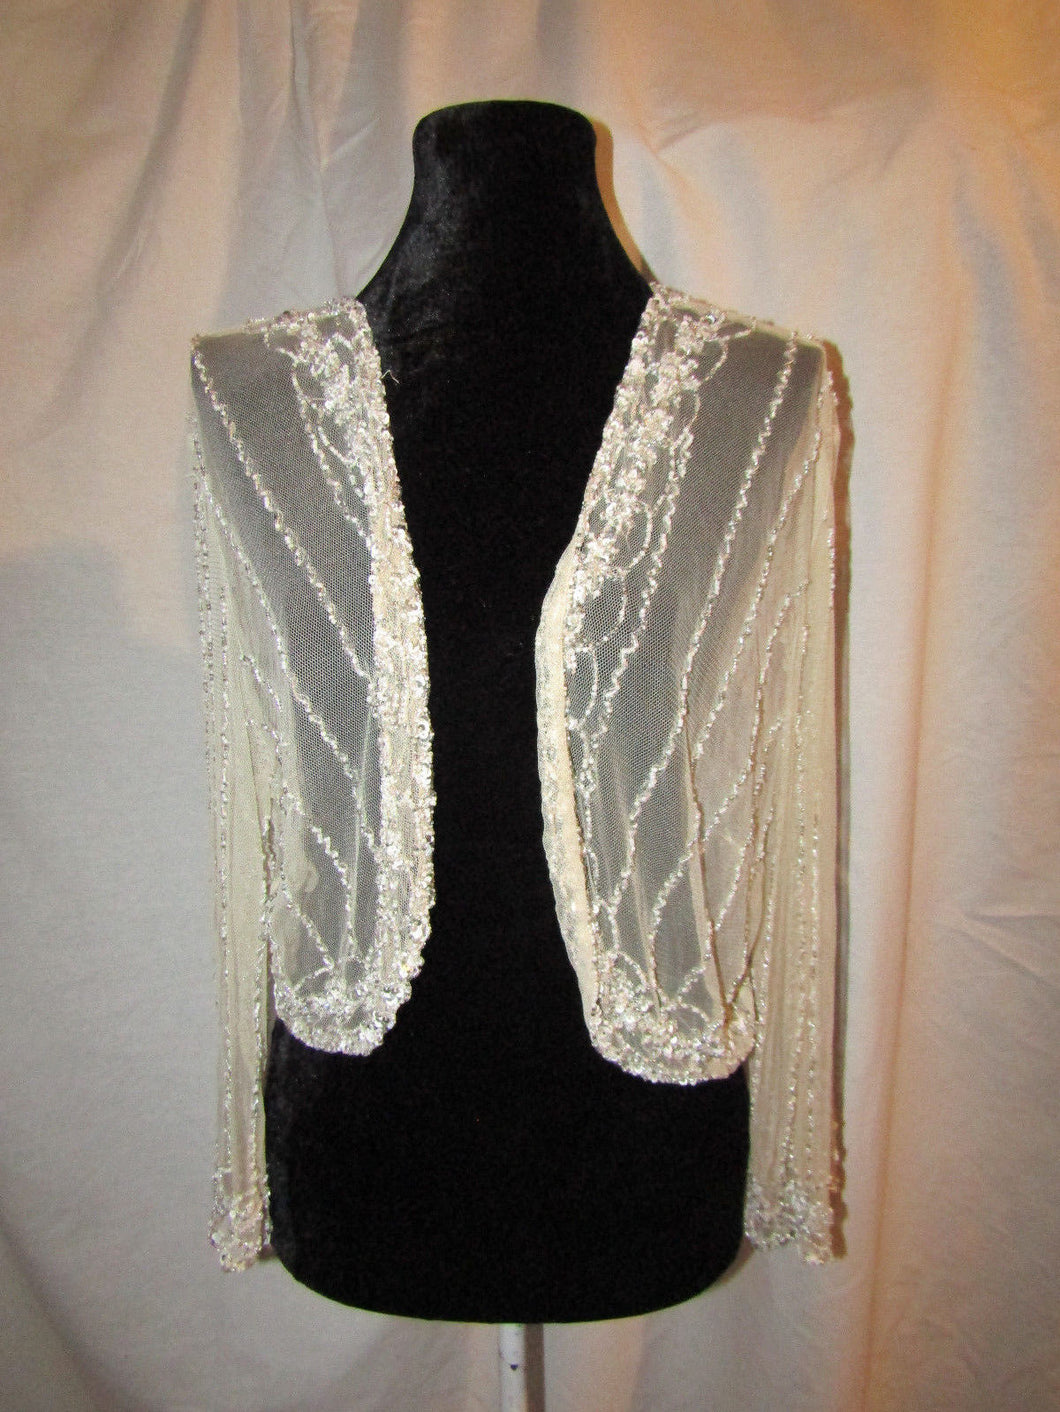 STENAY Woman's Sequin and Beaded Beige Evening Jacket Size 10 NWT